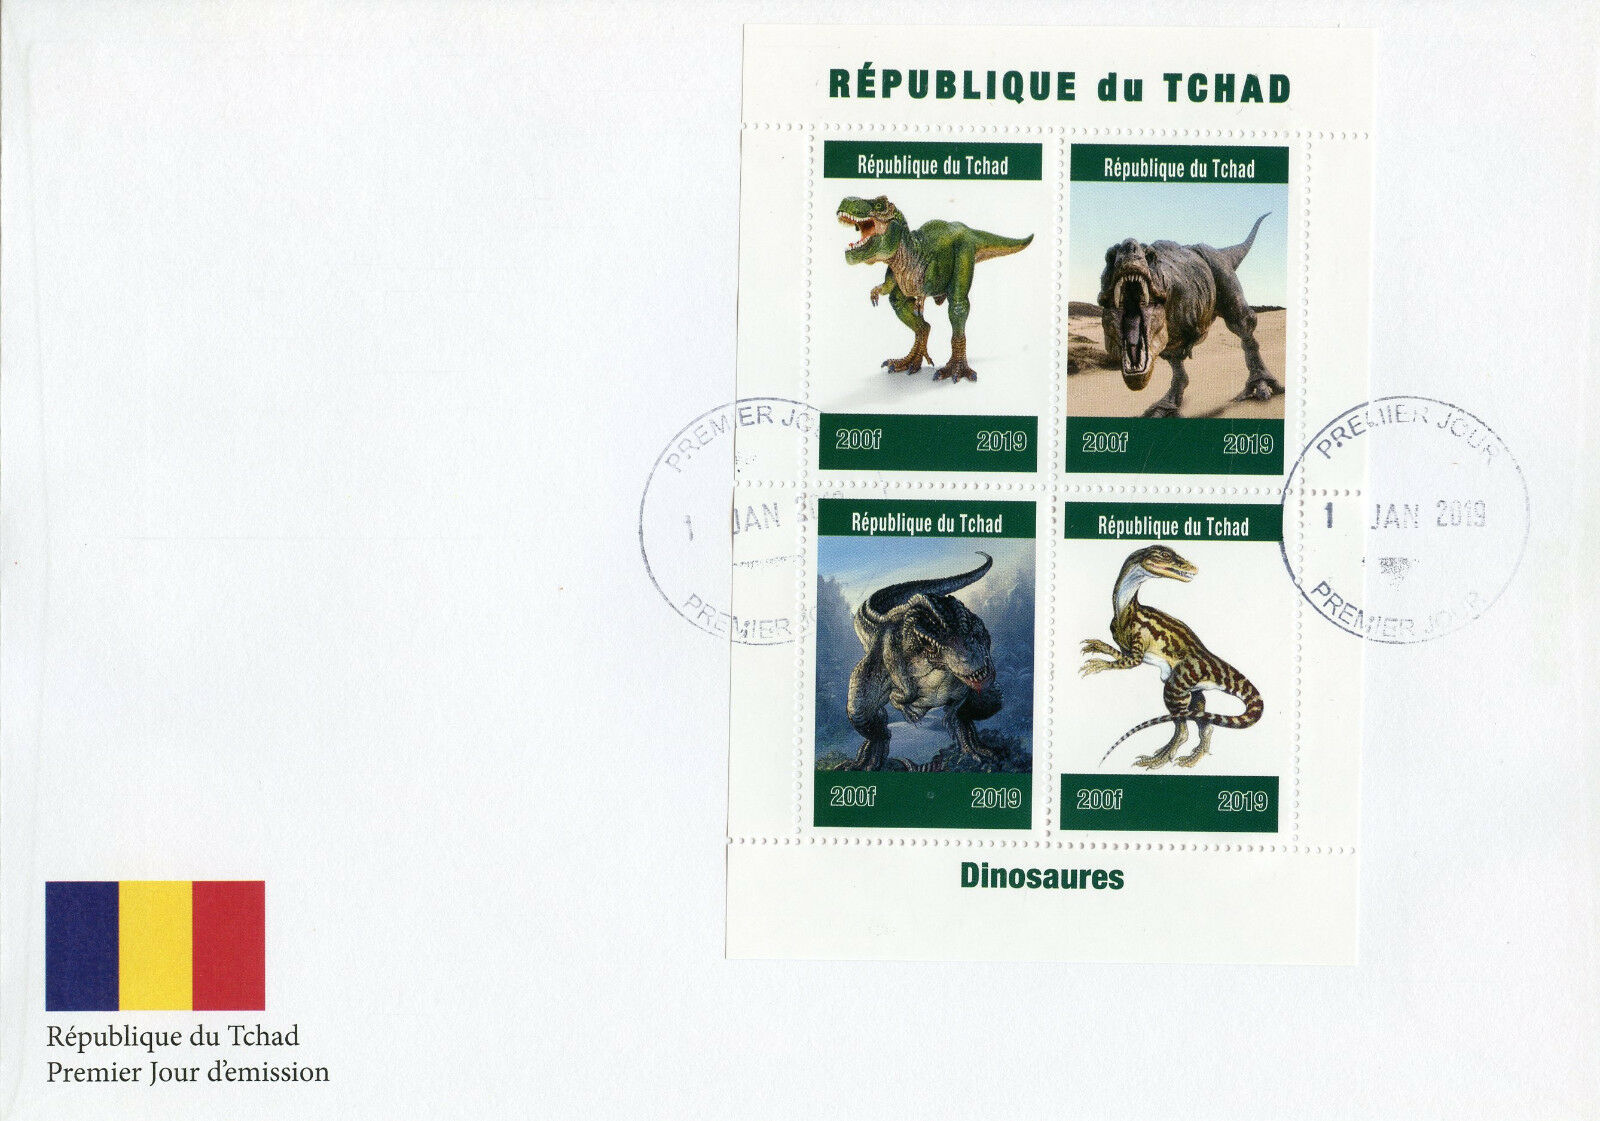 Republic of Chad - Dinosaurs (January 1, 2019) first day cover